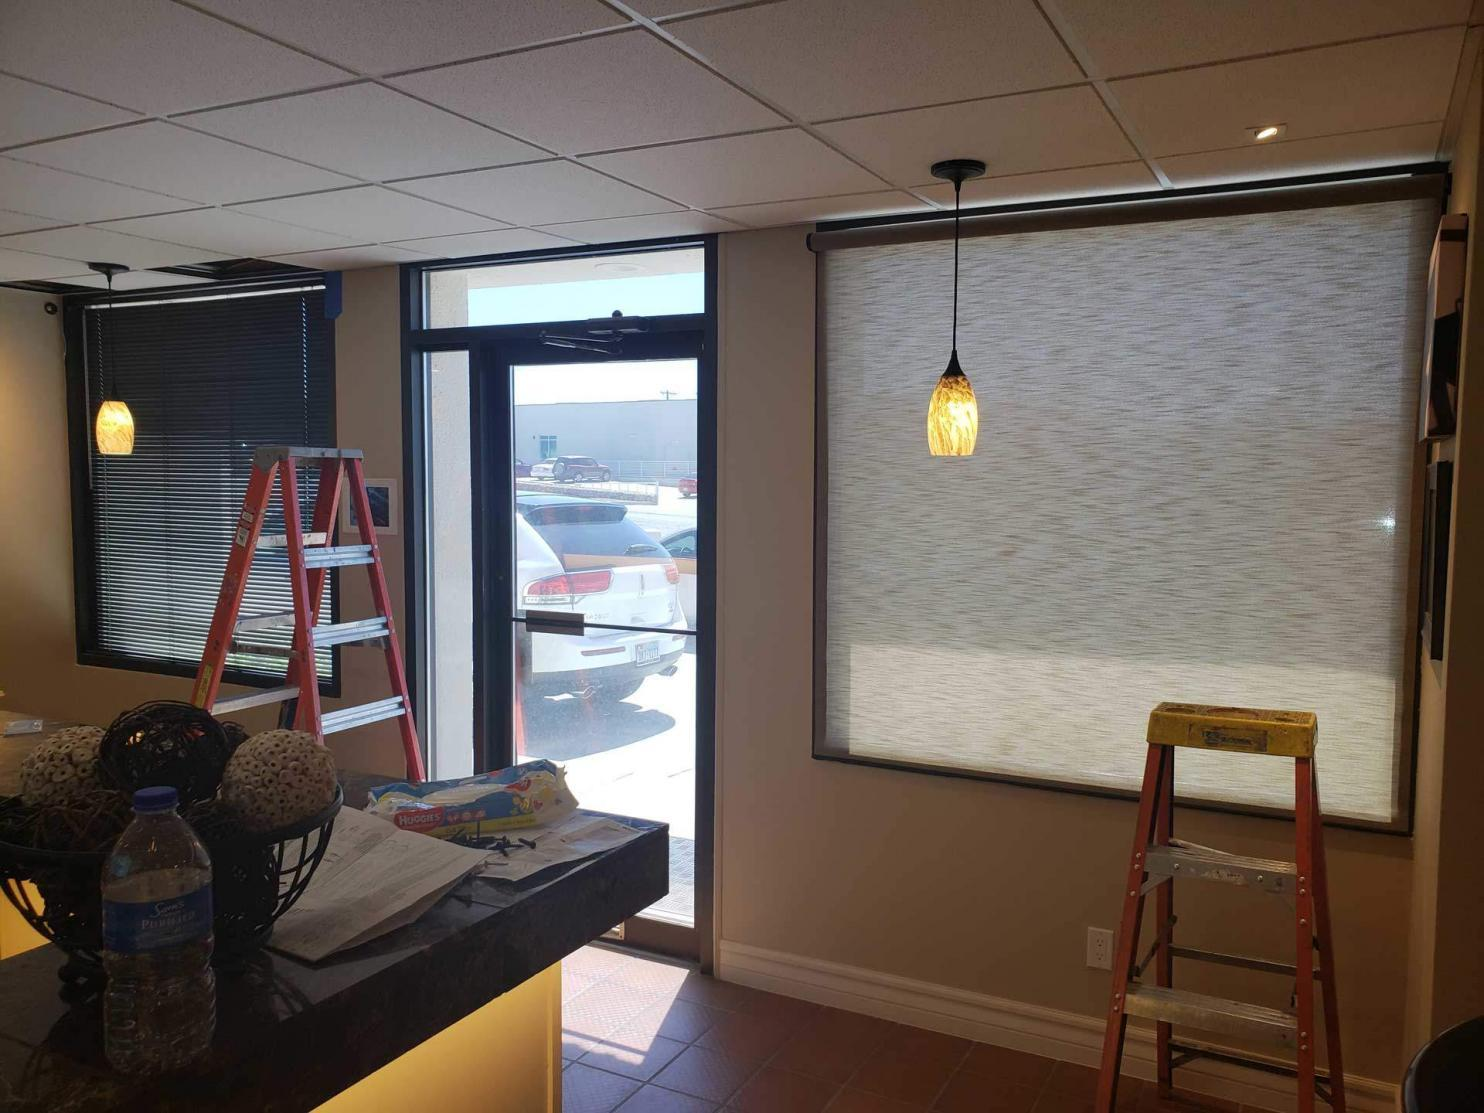 Lutrom-Motorized-shades-at-Caldwell-Office